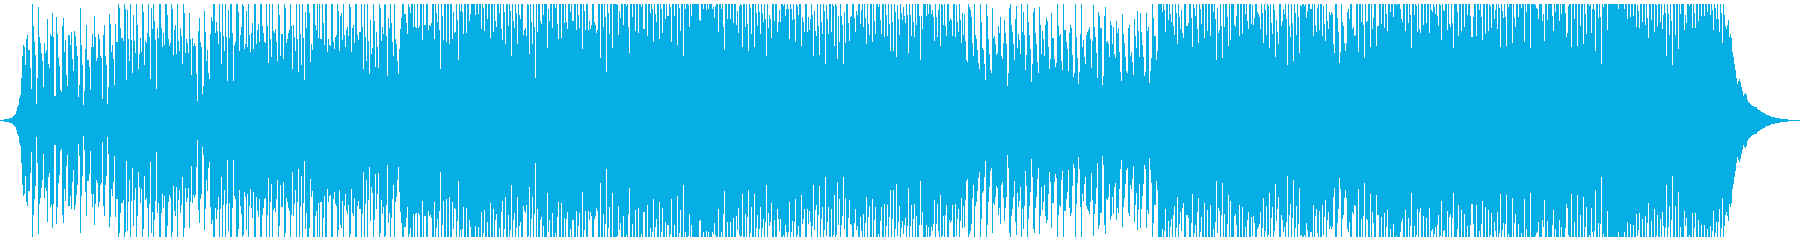 Impressive and uplifting pop corporate's reproduced waveform